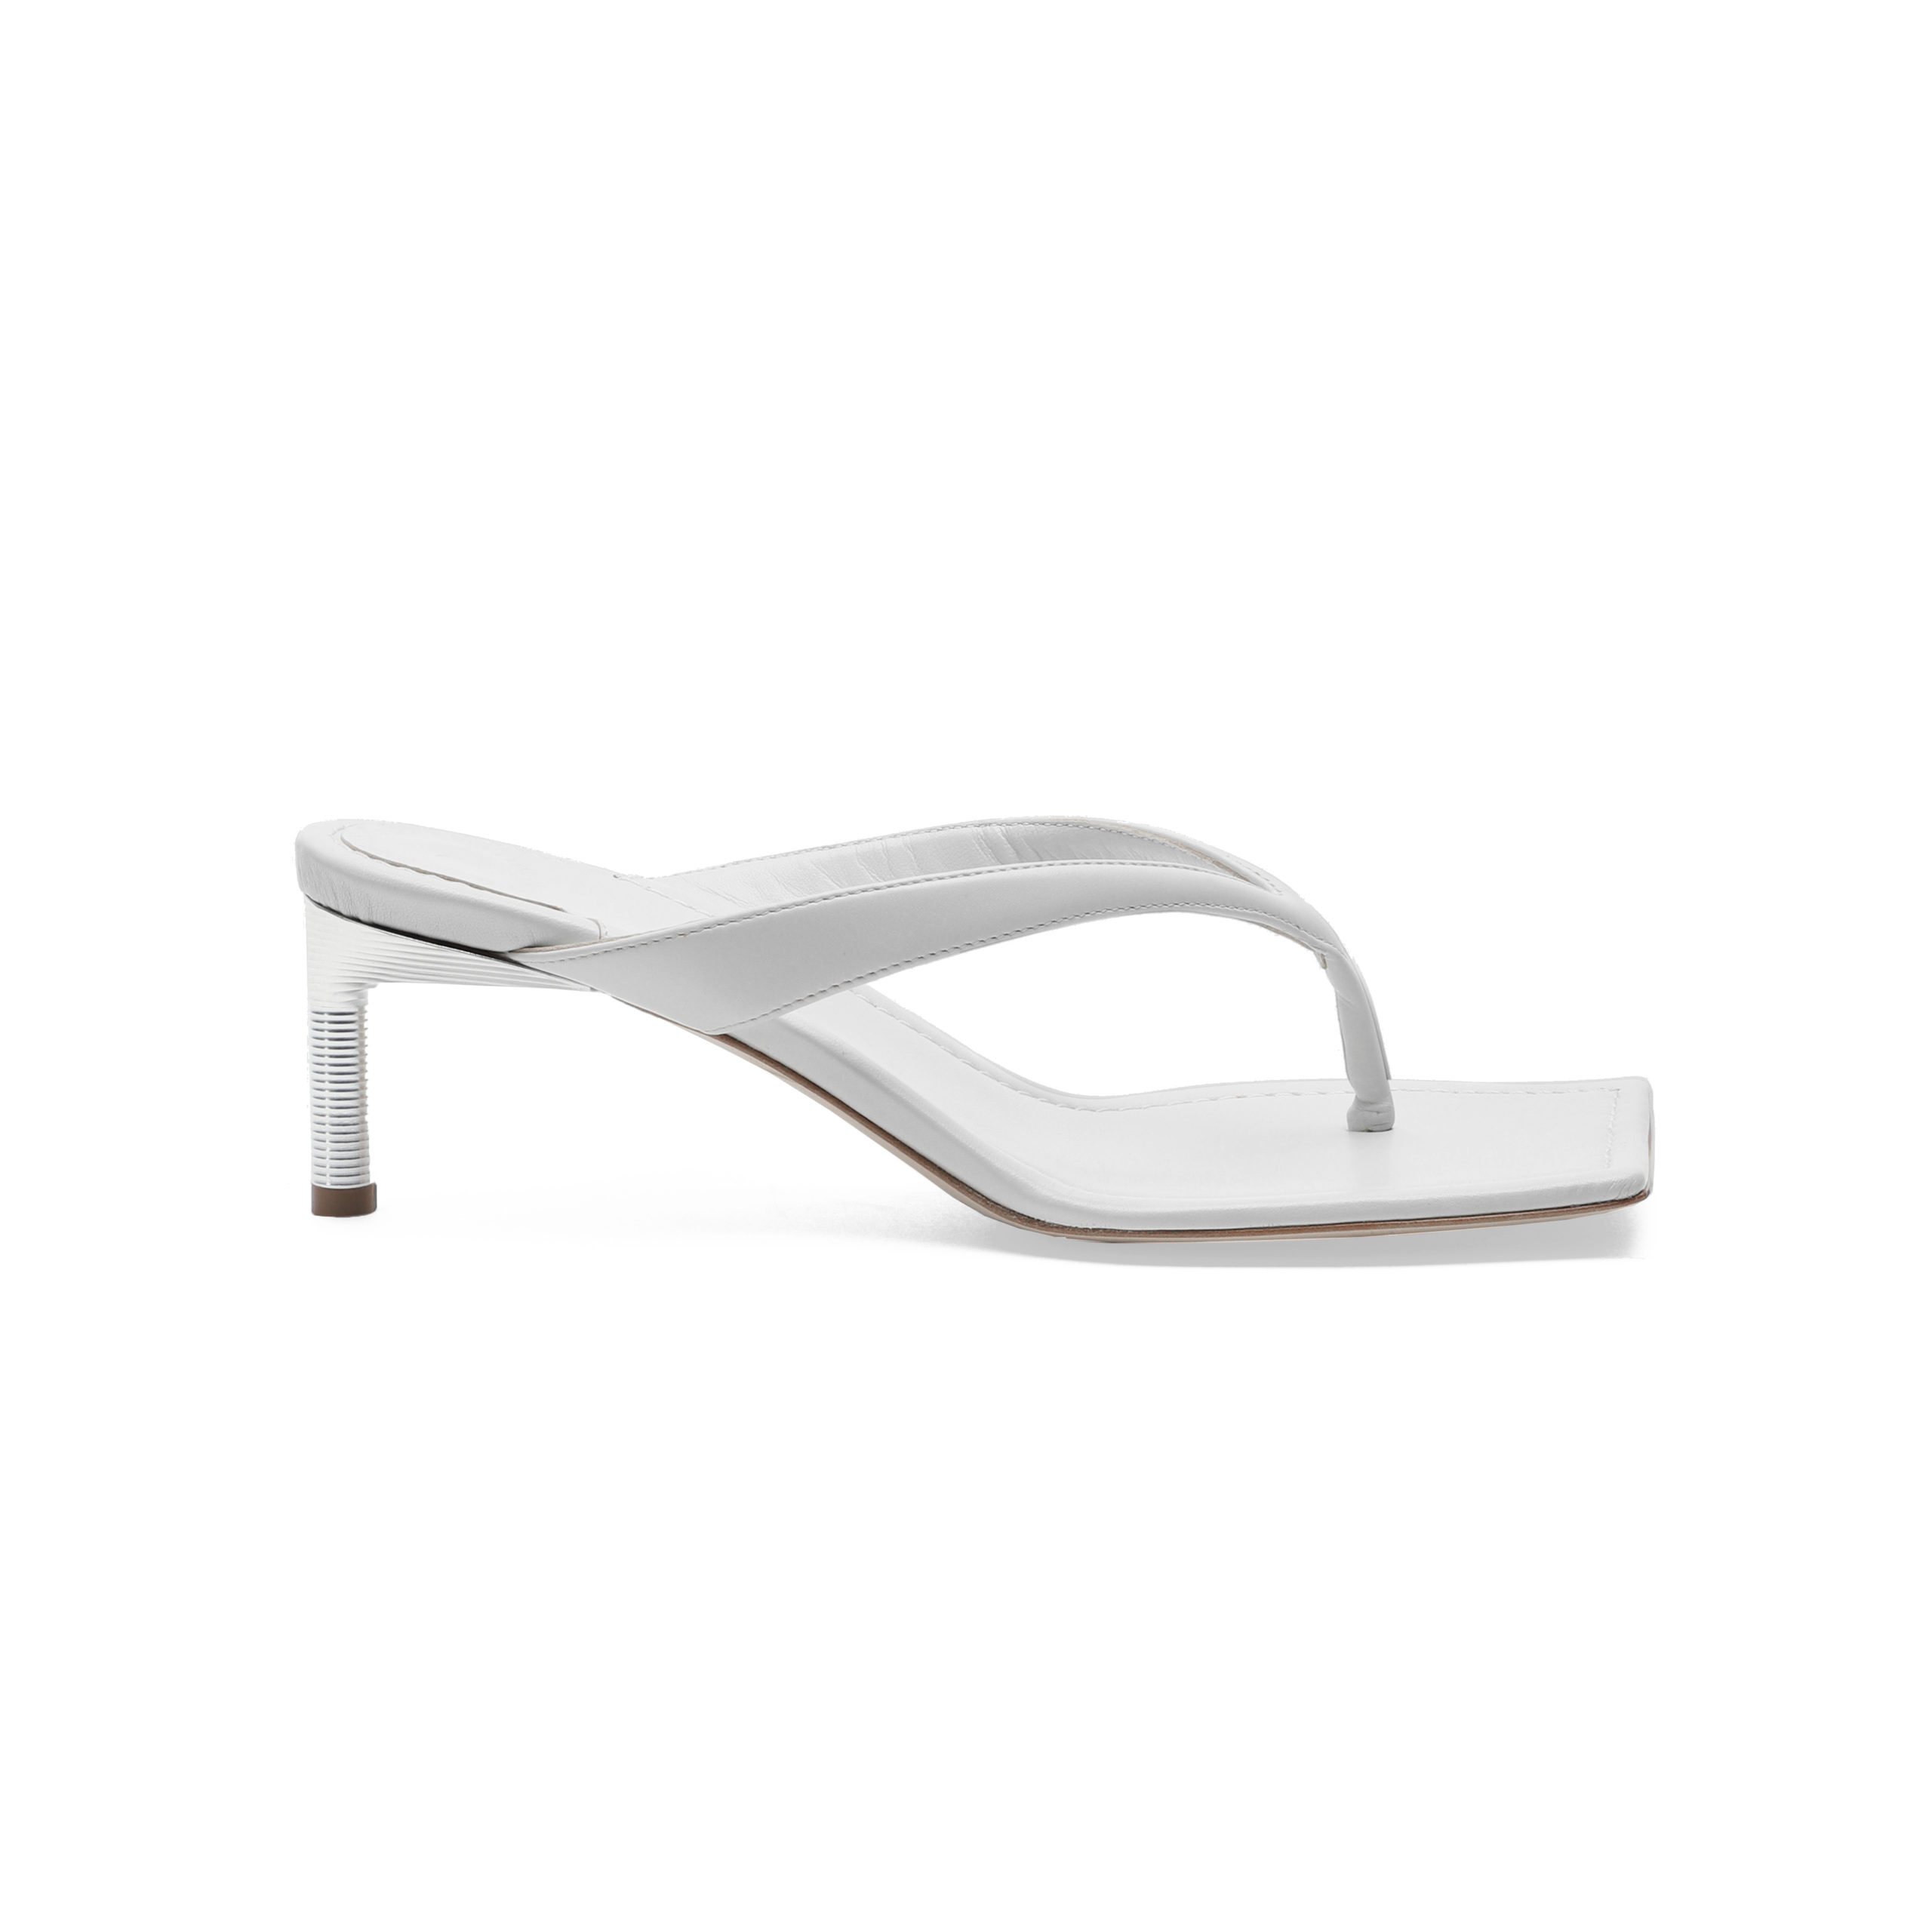 Sandales Leslie dune by Bettina Vermillon x Timeless Pearly